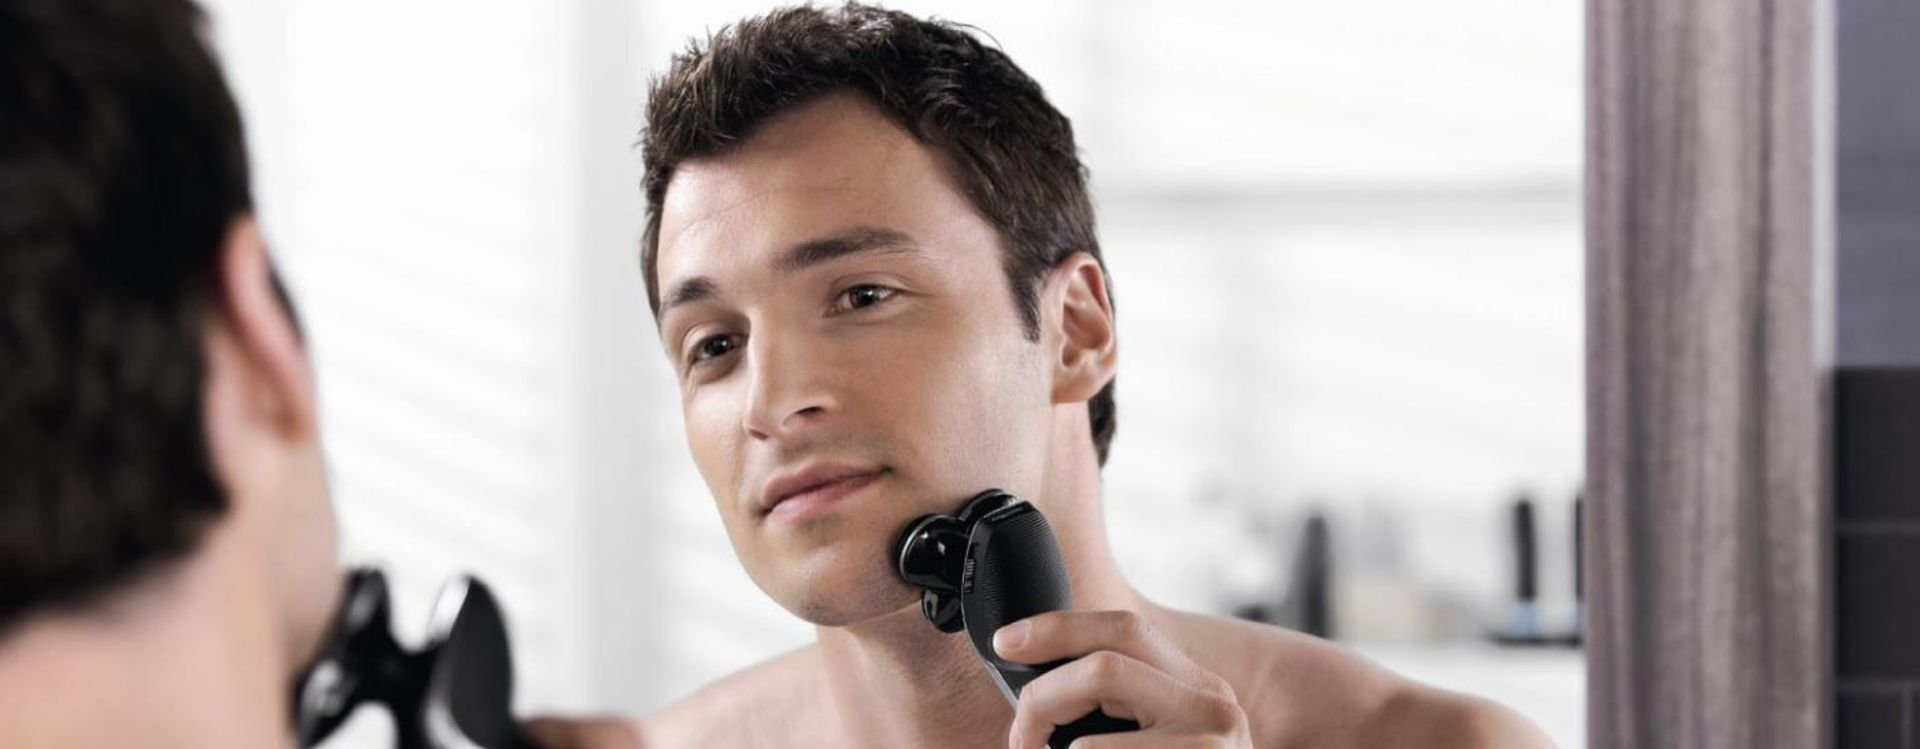 The traditional shaving methods are decreasing as new shaving methods are rising.